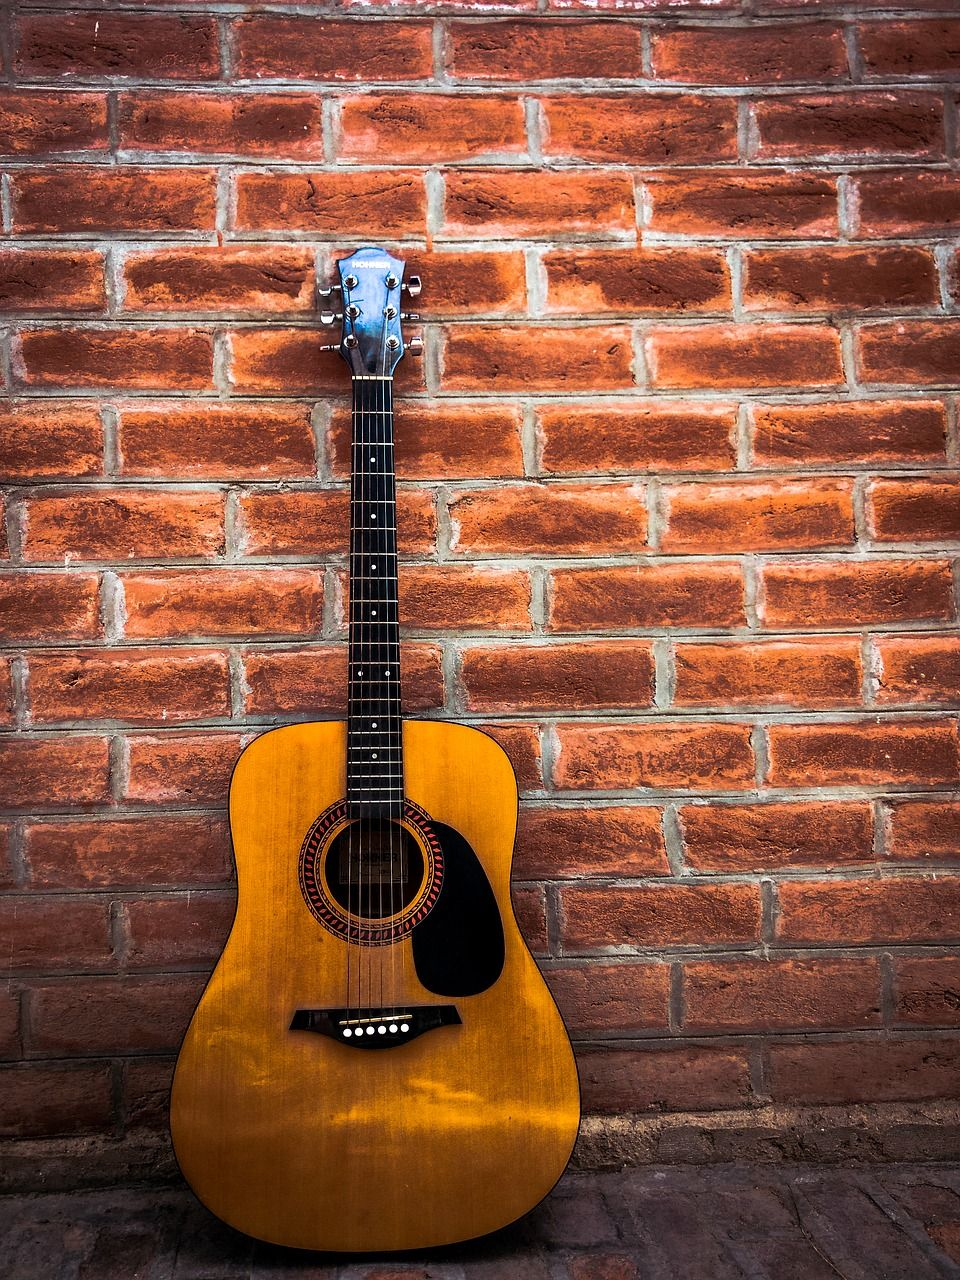 Free Image On Pixabay Music Guitar Vintage Colorful In 2020 Best Photo Background Best Background Images Dslr Background Images